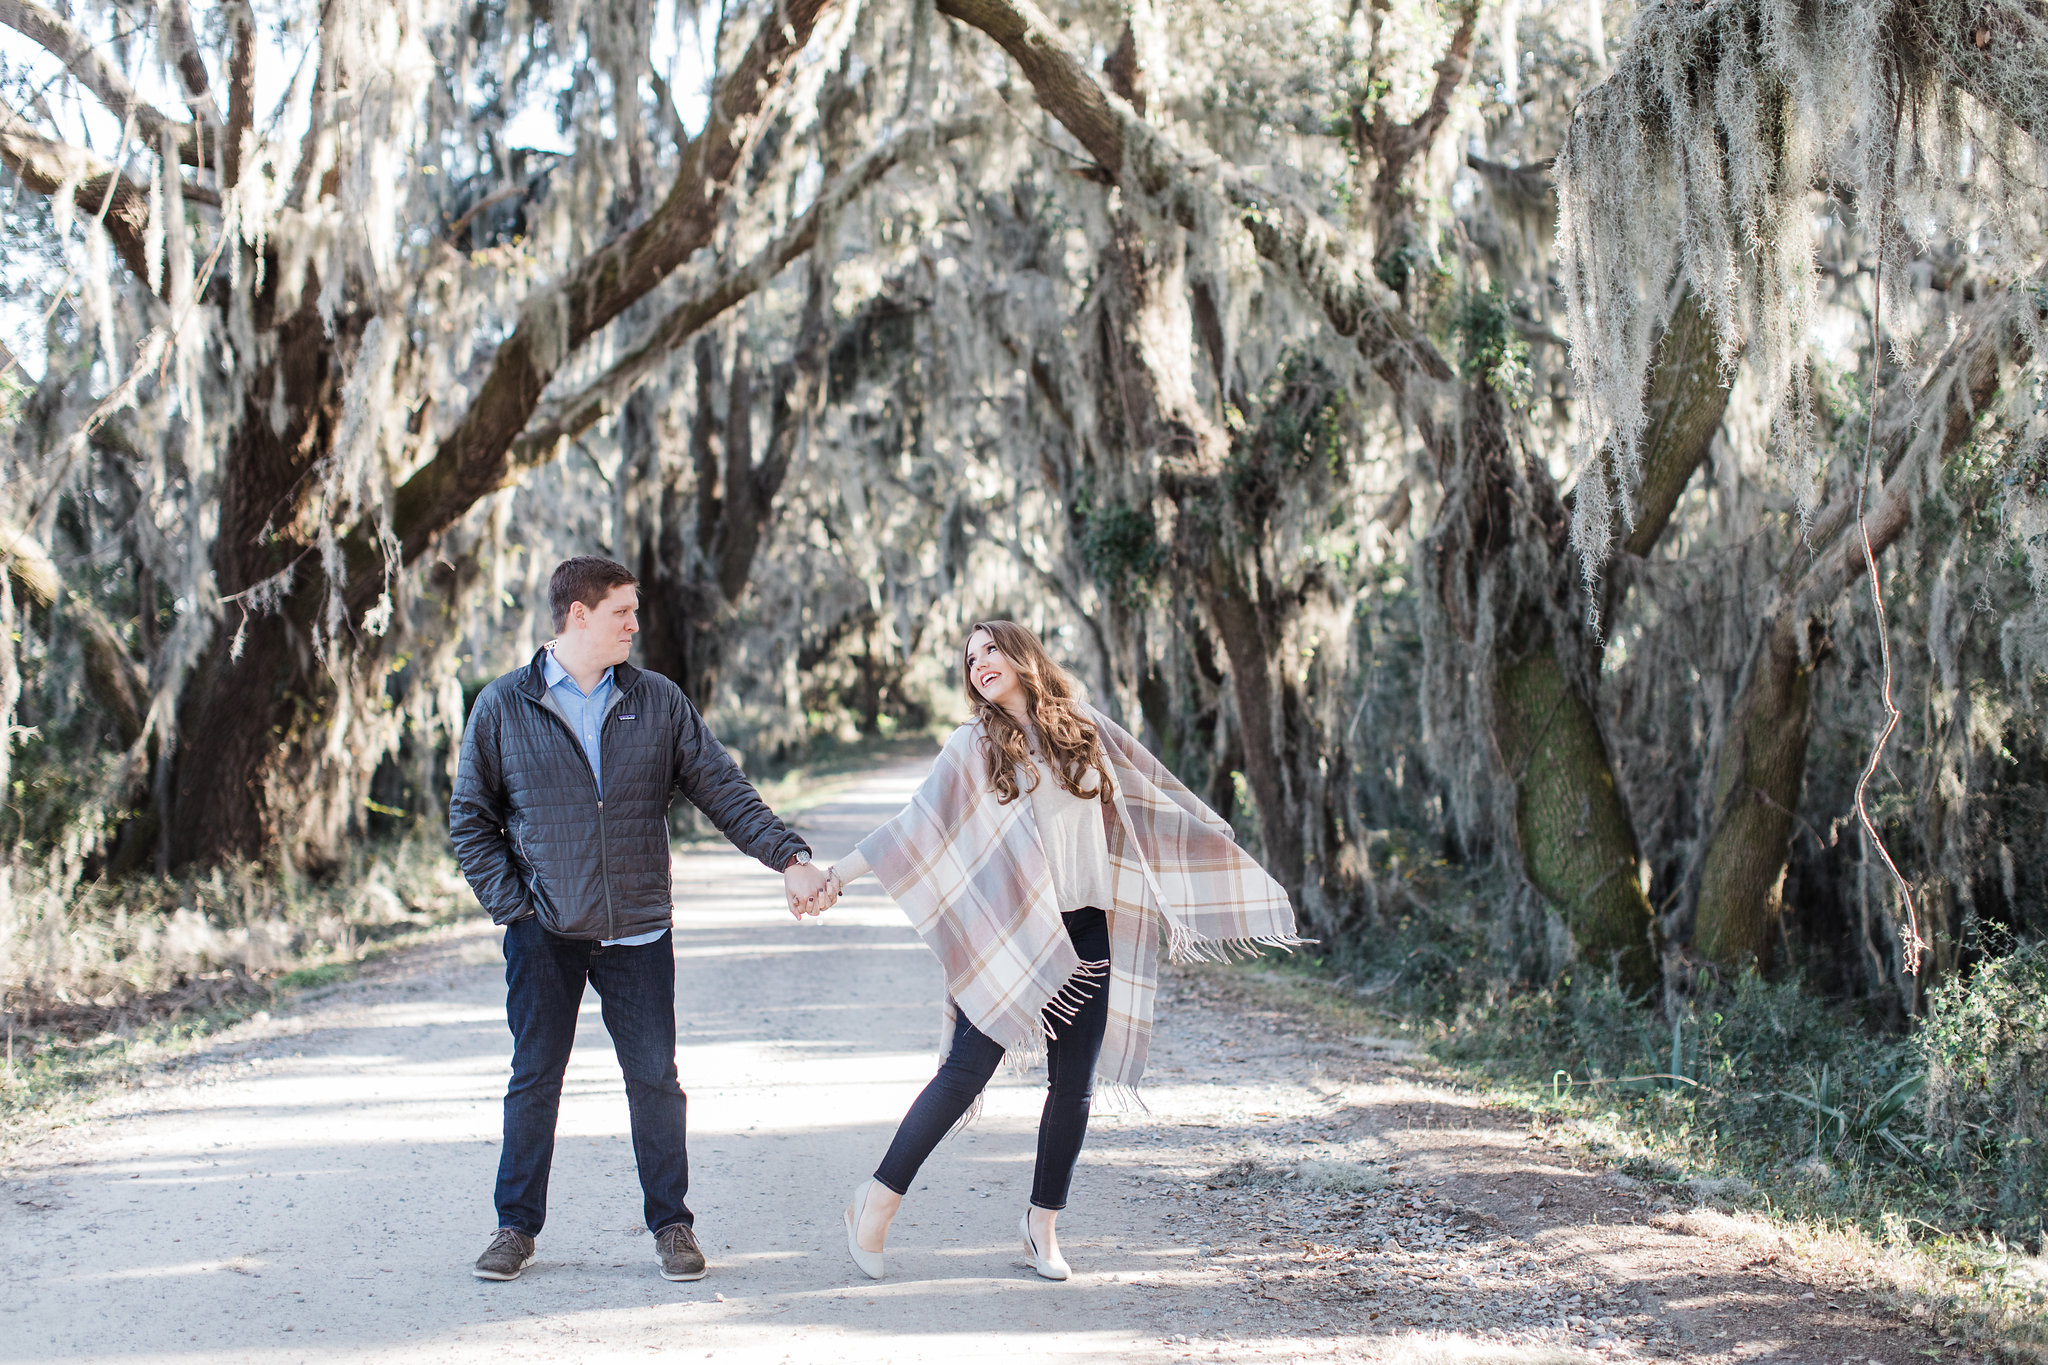 Sara + David | Savannah National Wildlife Refuge Engagement Shoot | Savannah Engagement Photographer | Apt. B Photography